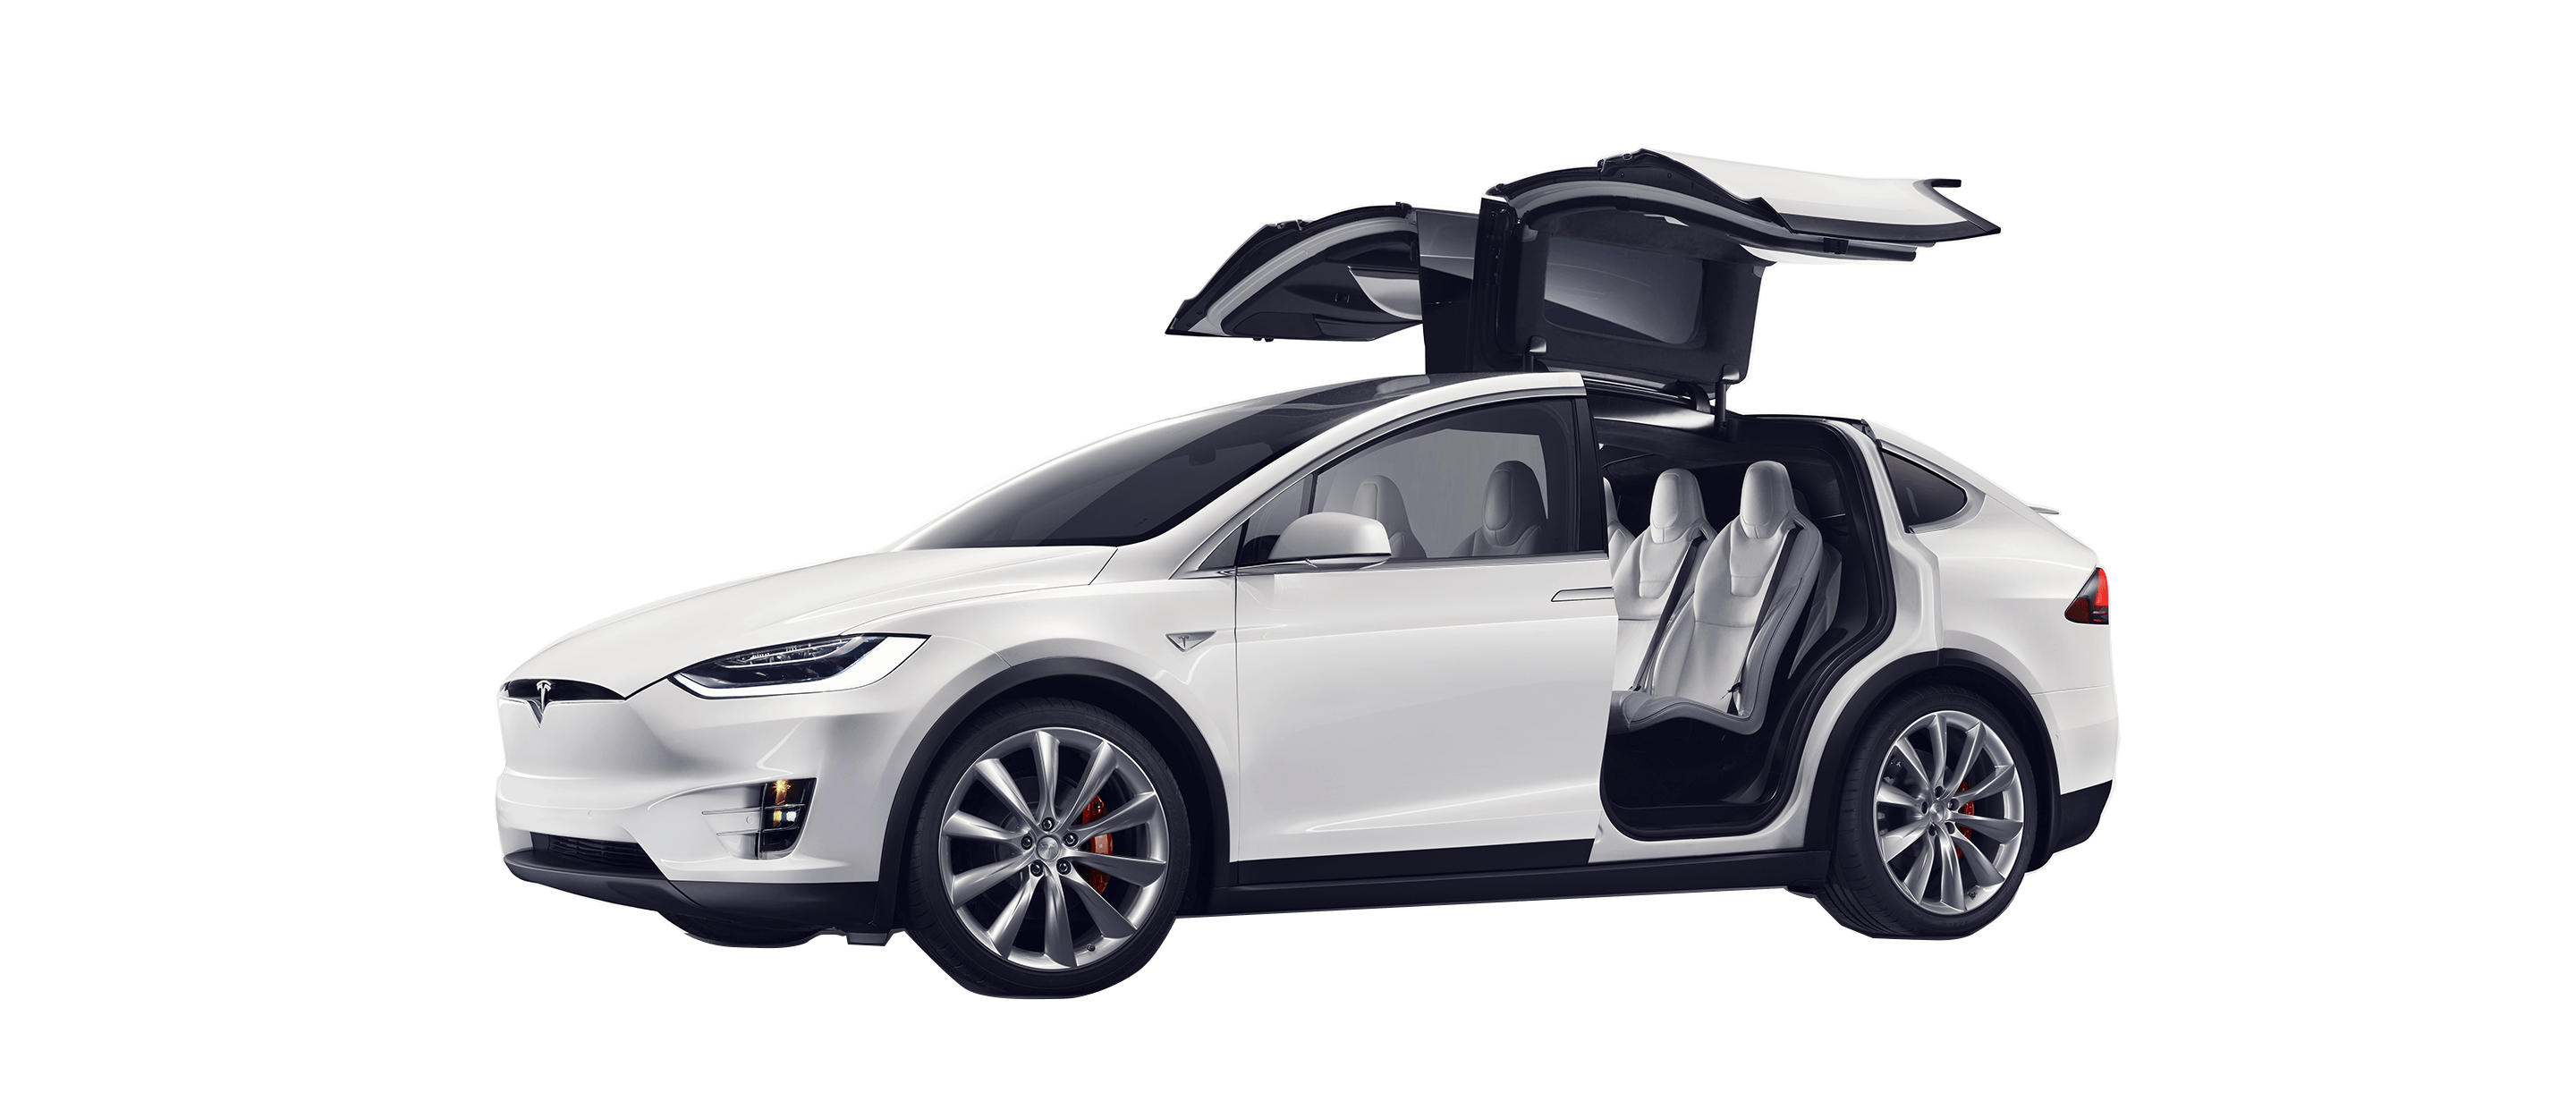 All Tesla Cars Being Produced Now Have Full SelfDriving Hardware - All tesla cars